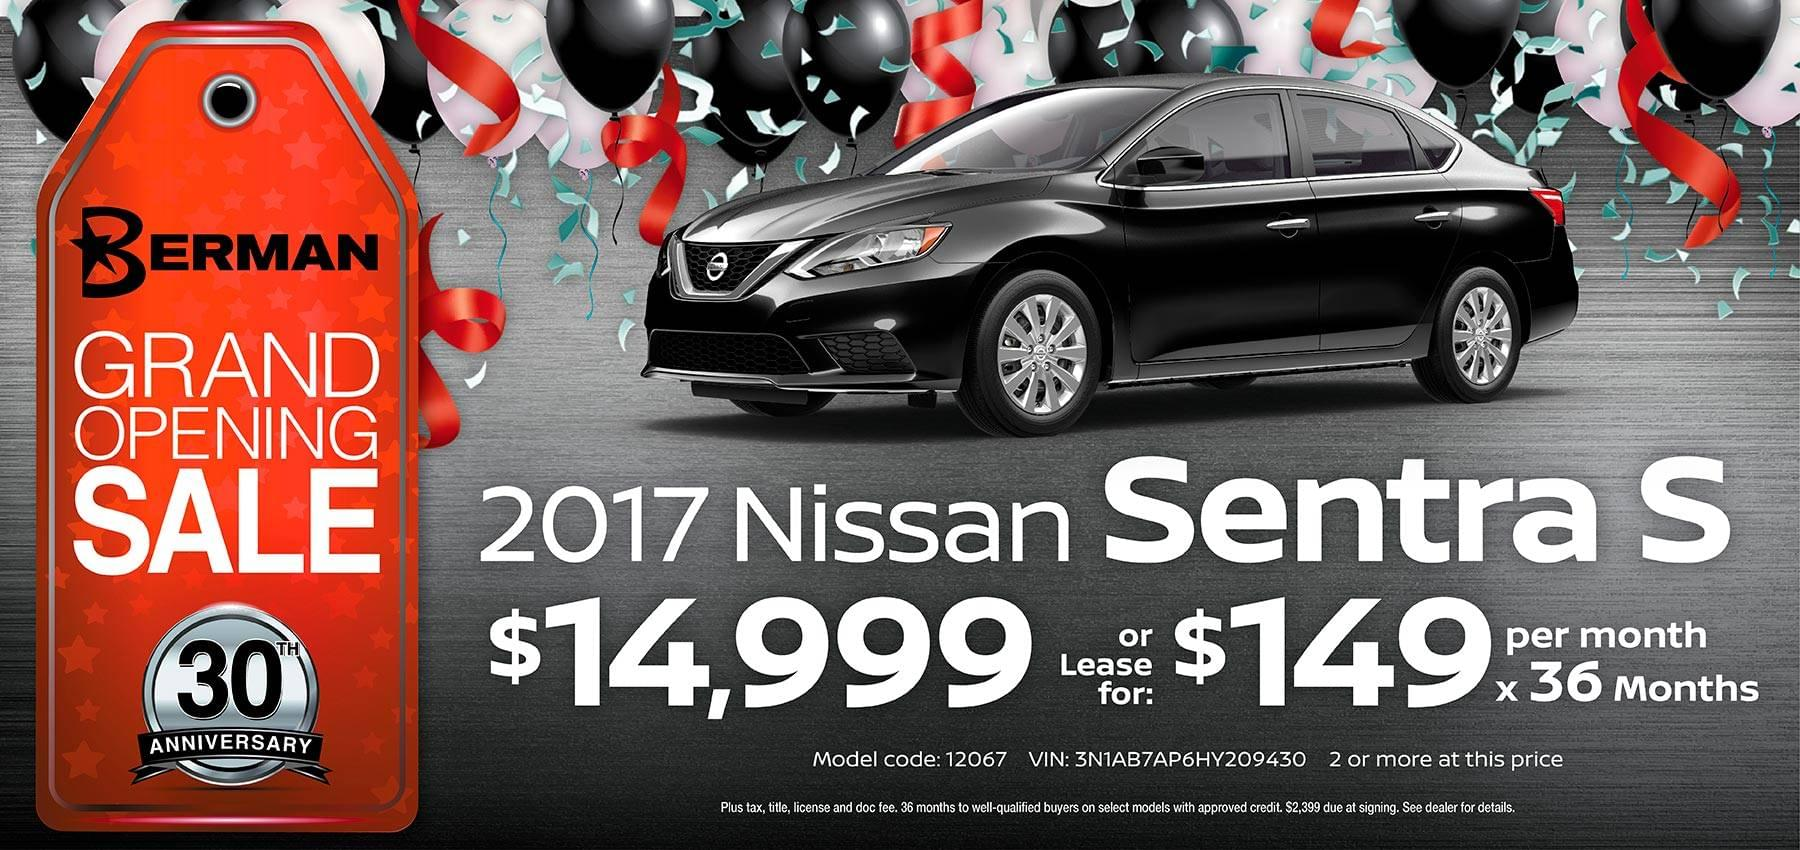 2017 Nissan Sentra Berman Nissan of Chicago March Grand Opening Sale